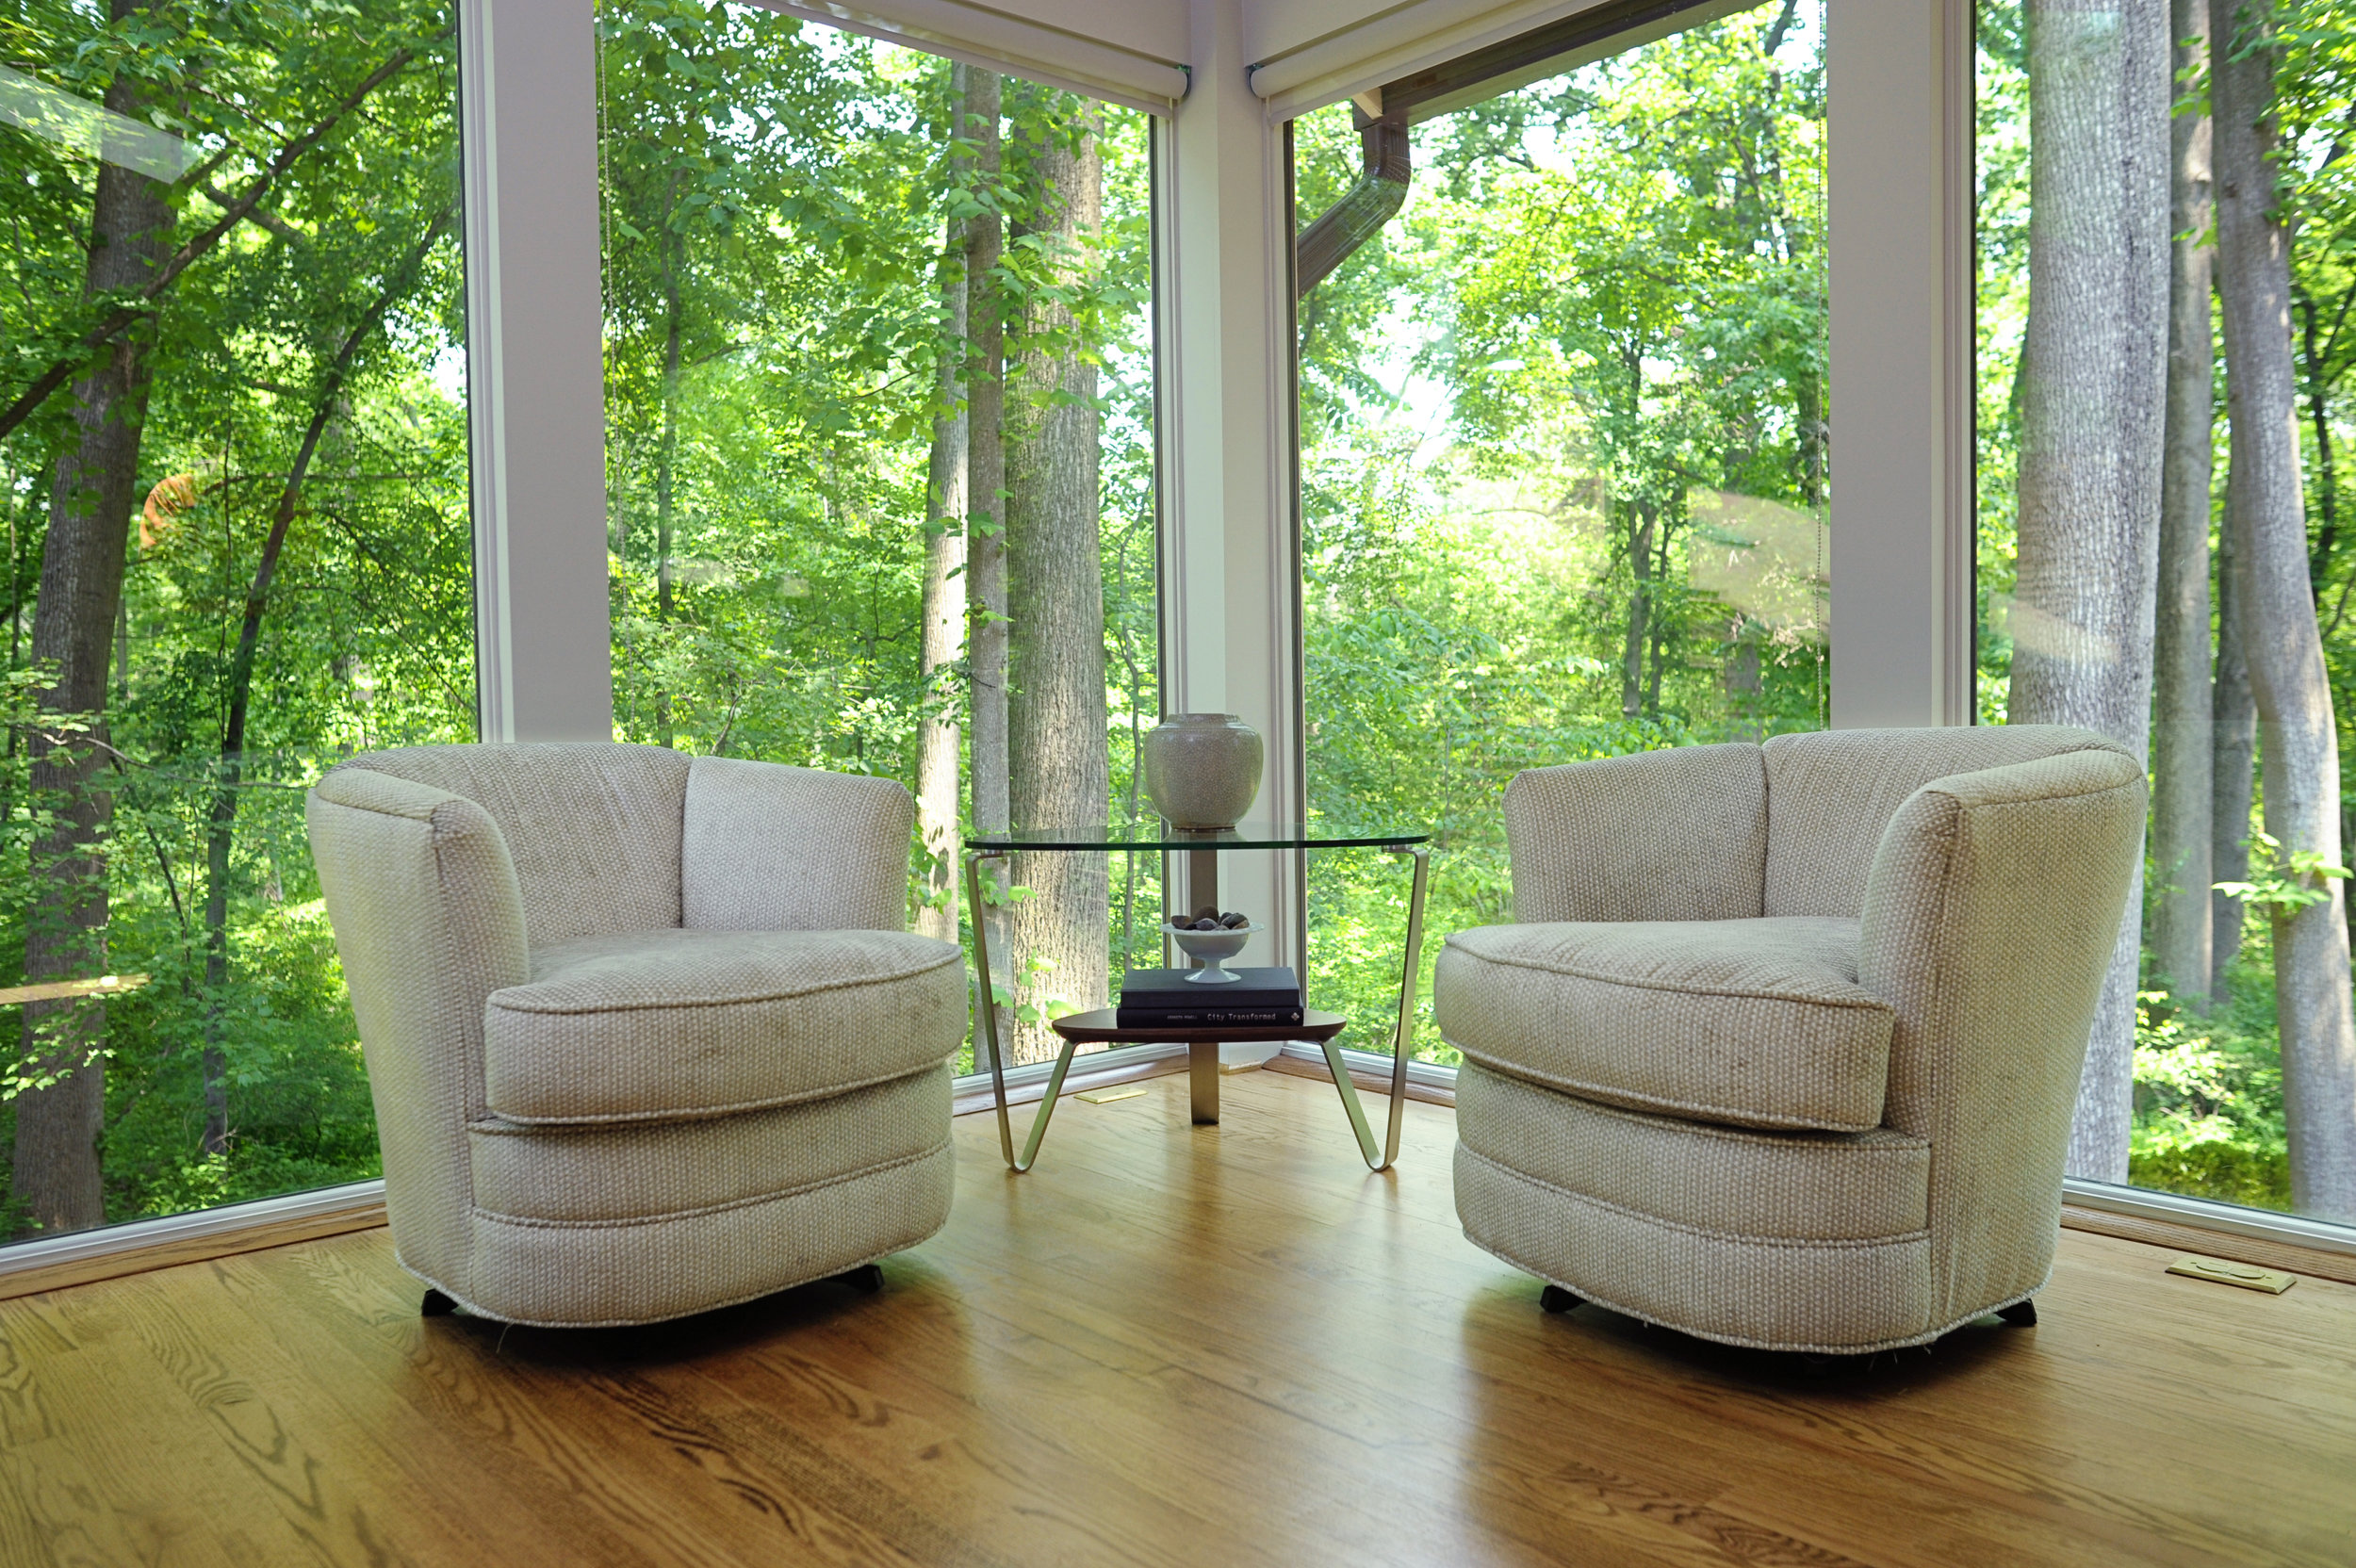 {A pair of swivel chairs is perfect for a cozy conversation (or taking in the amazing view outside!).  Blue Sea Drive  design by April Force Pardoe Interiors.}